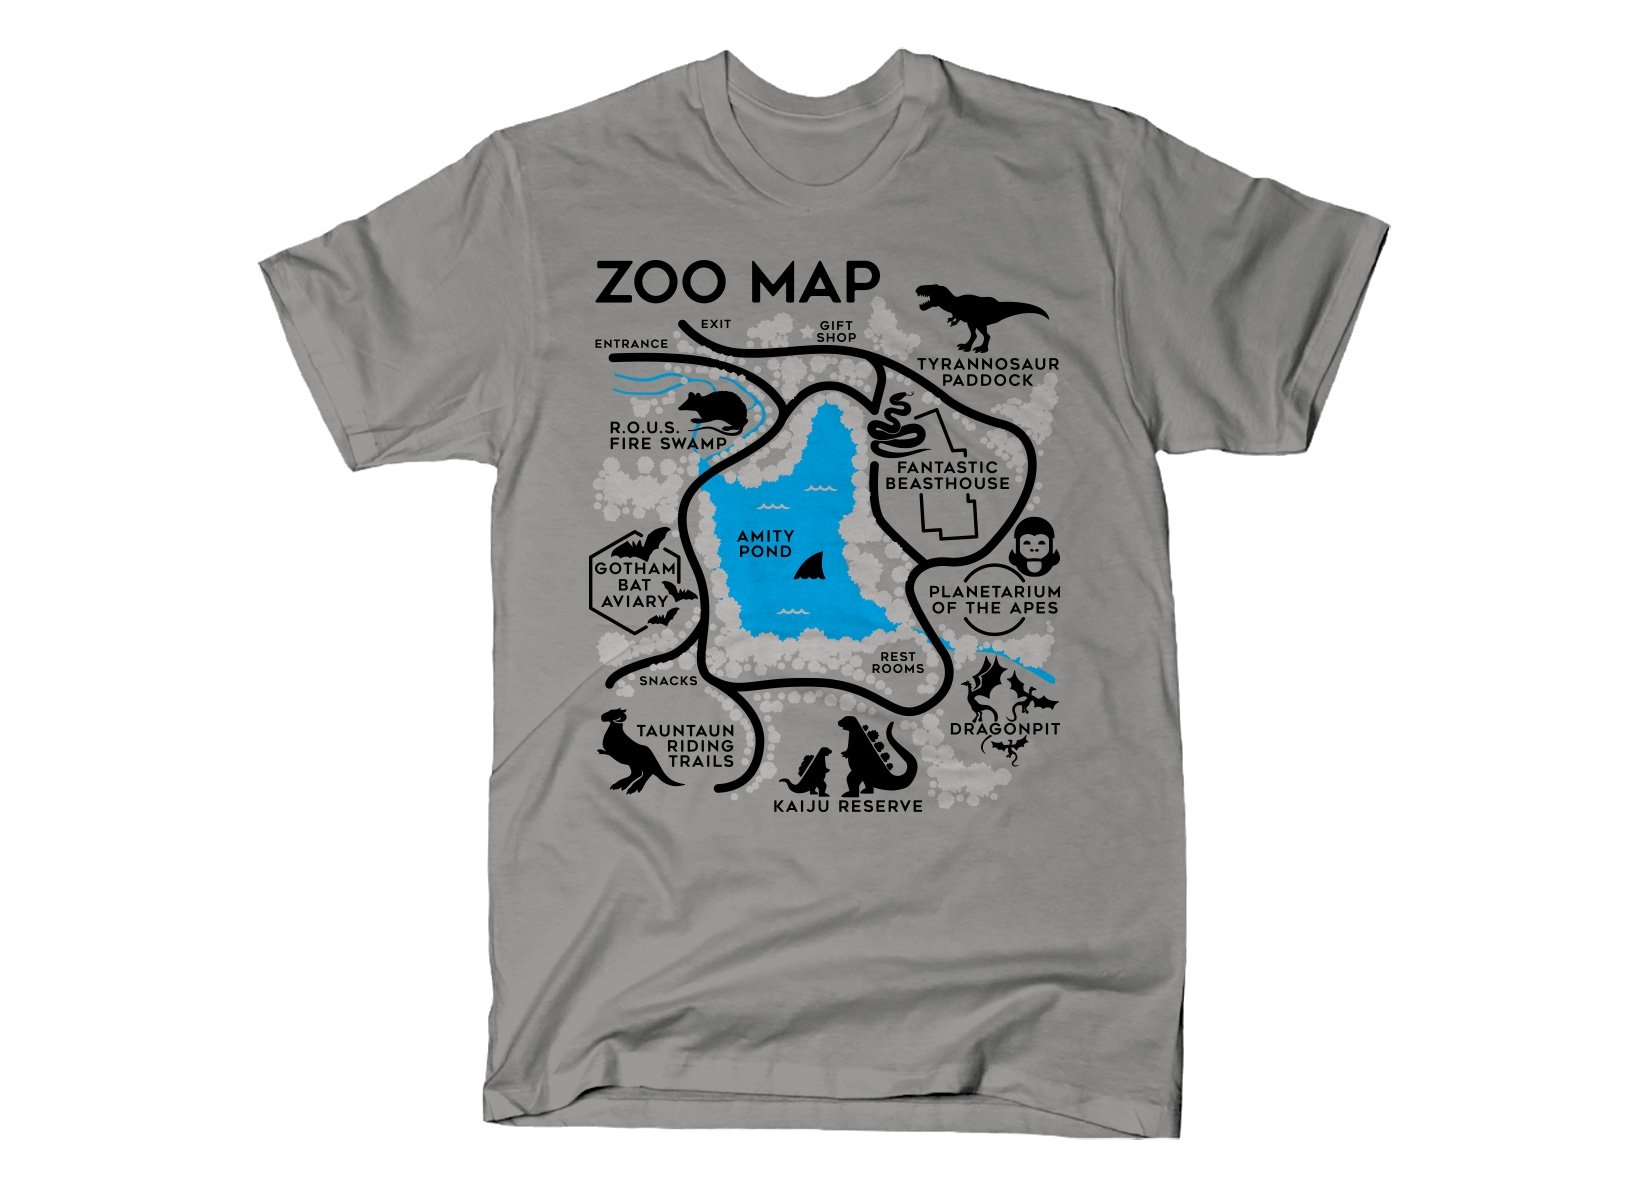 Zoo Map on Mens T-Shirt